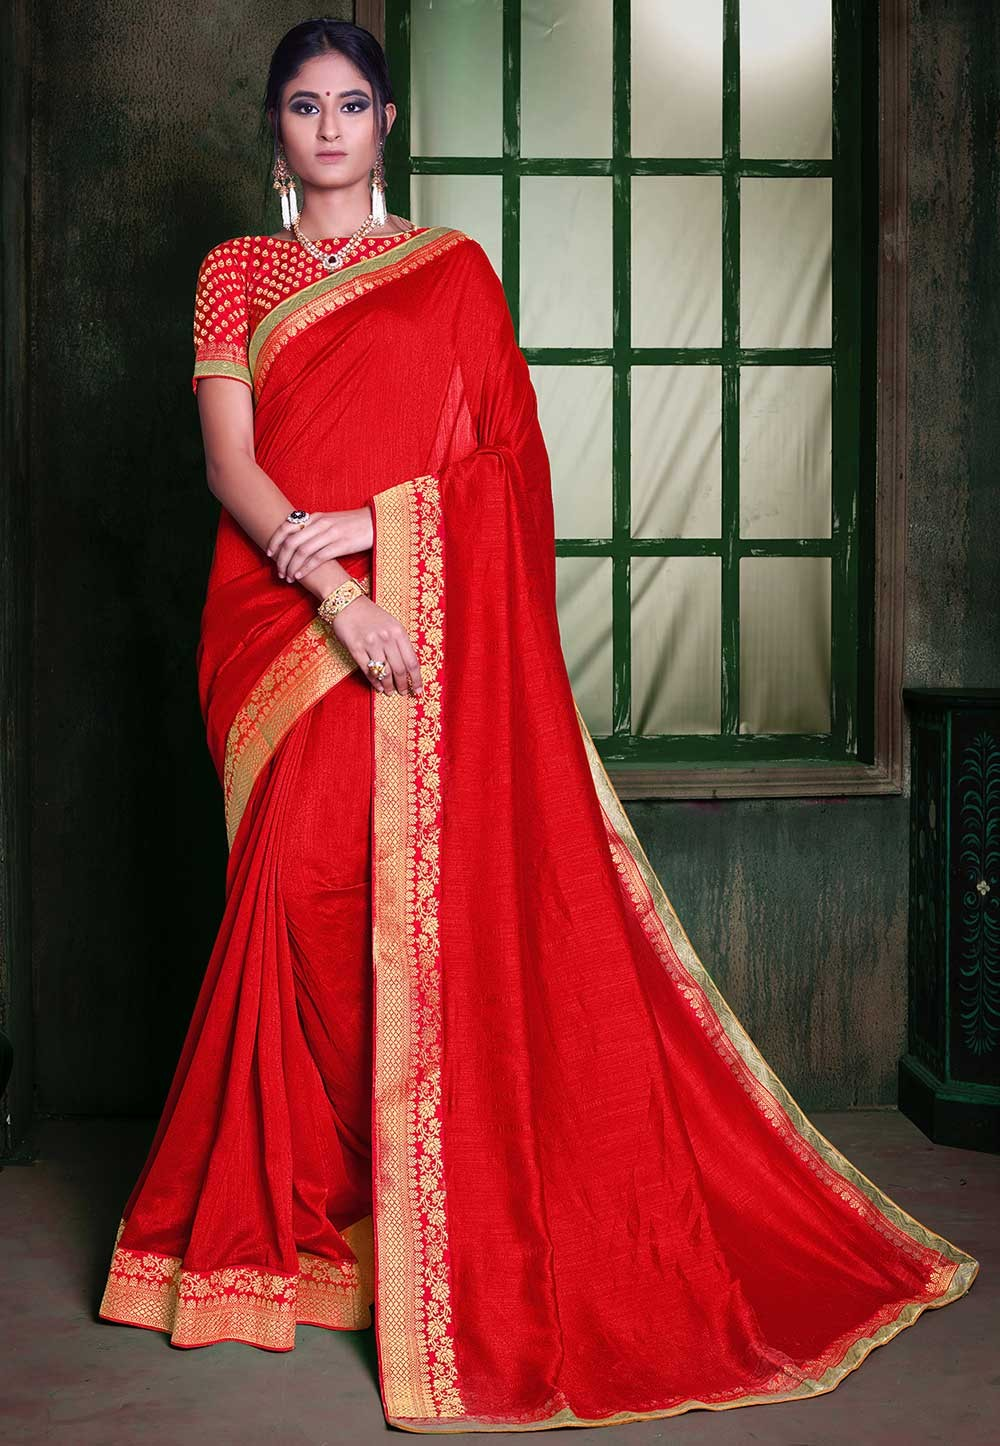 Red Colour Indian Designer Sari.